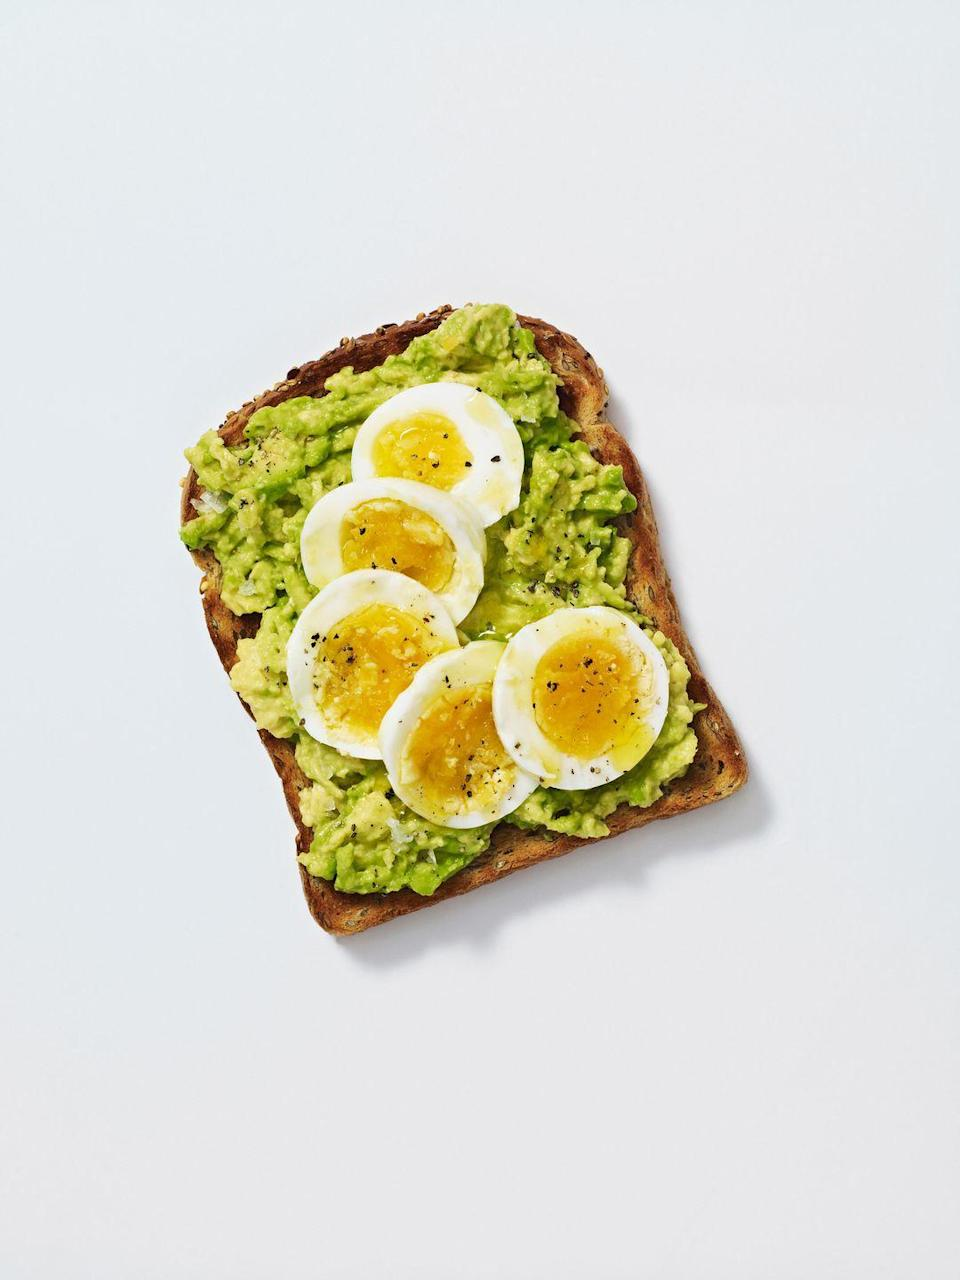 <p>I don't know if this will ever not be a universally loved snack food, but avocado toast became a thing in 2015 for any and every meal of the day. </p>